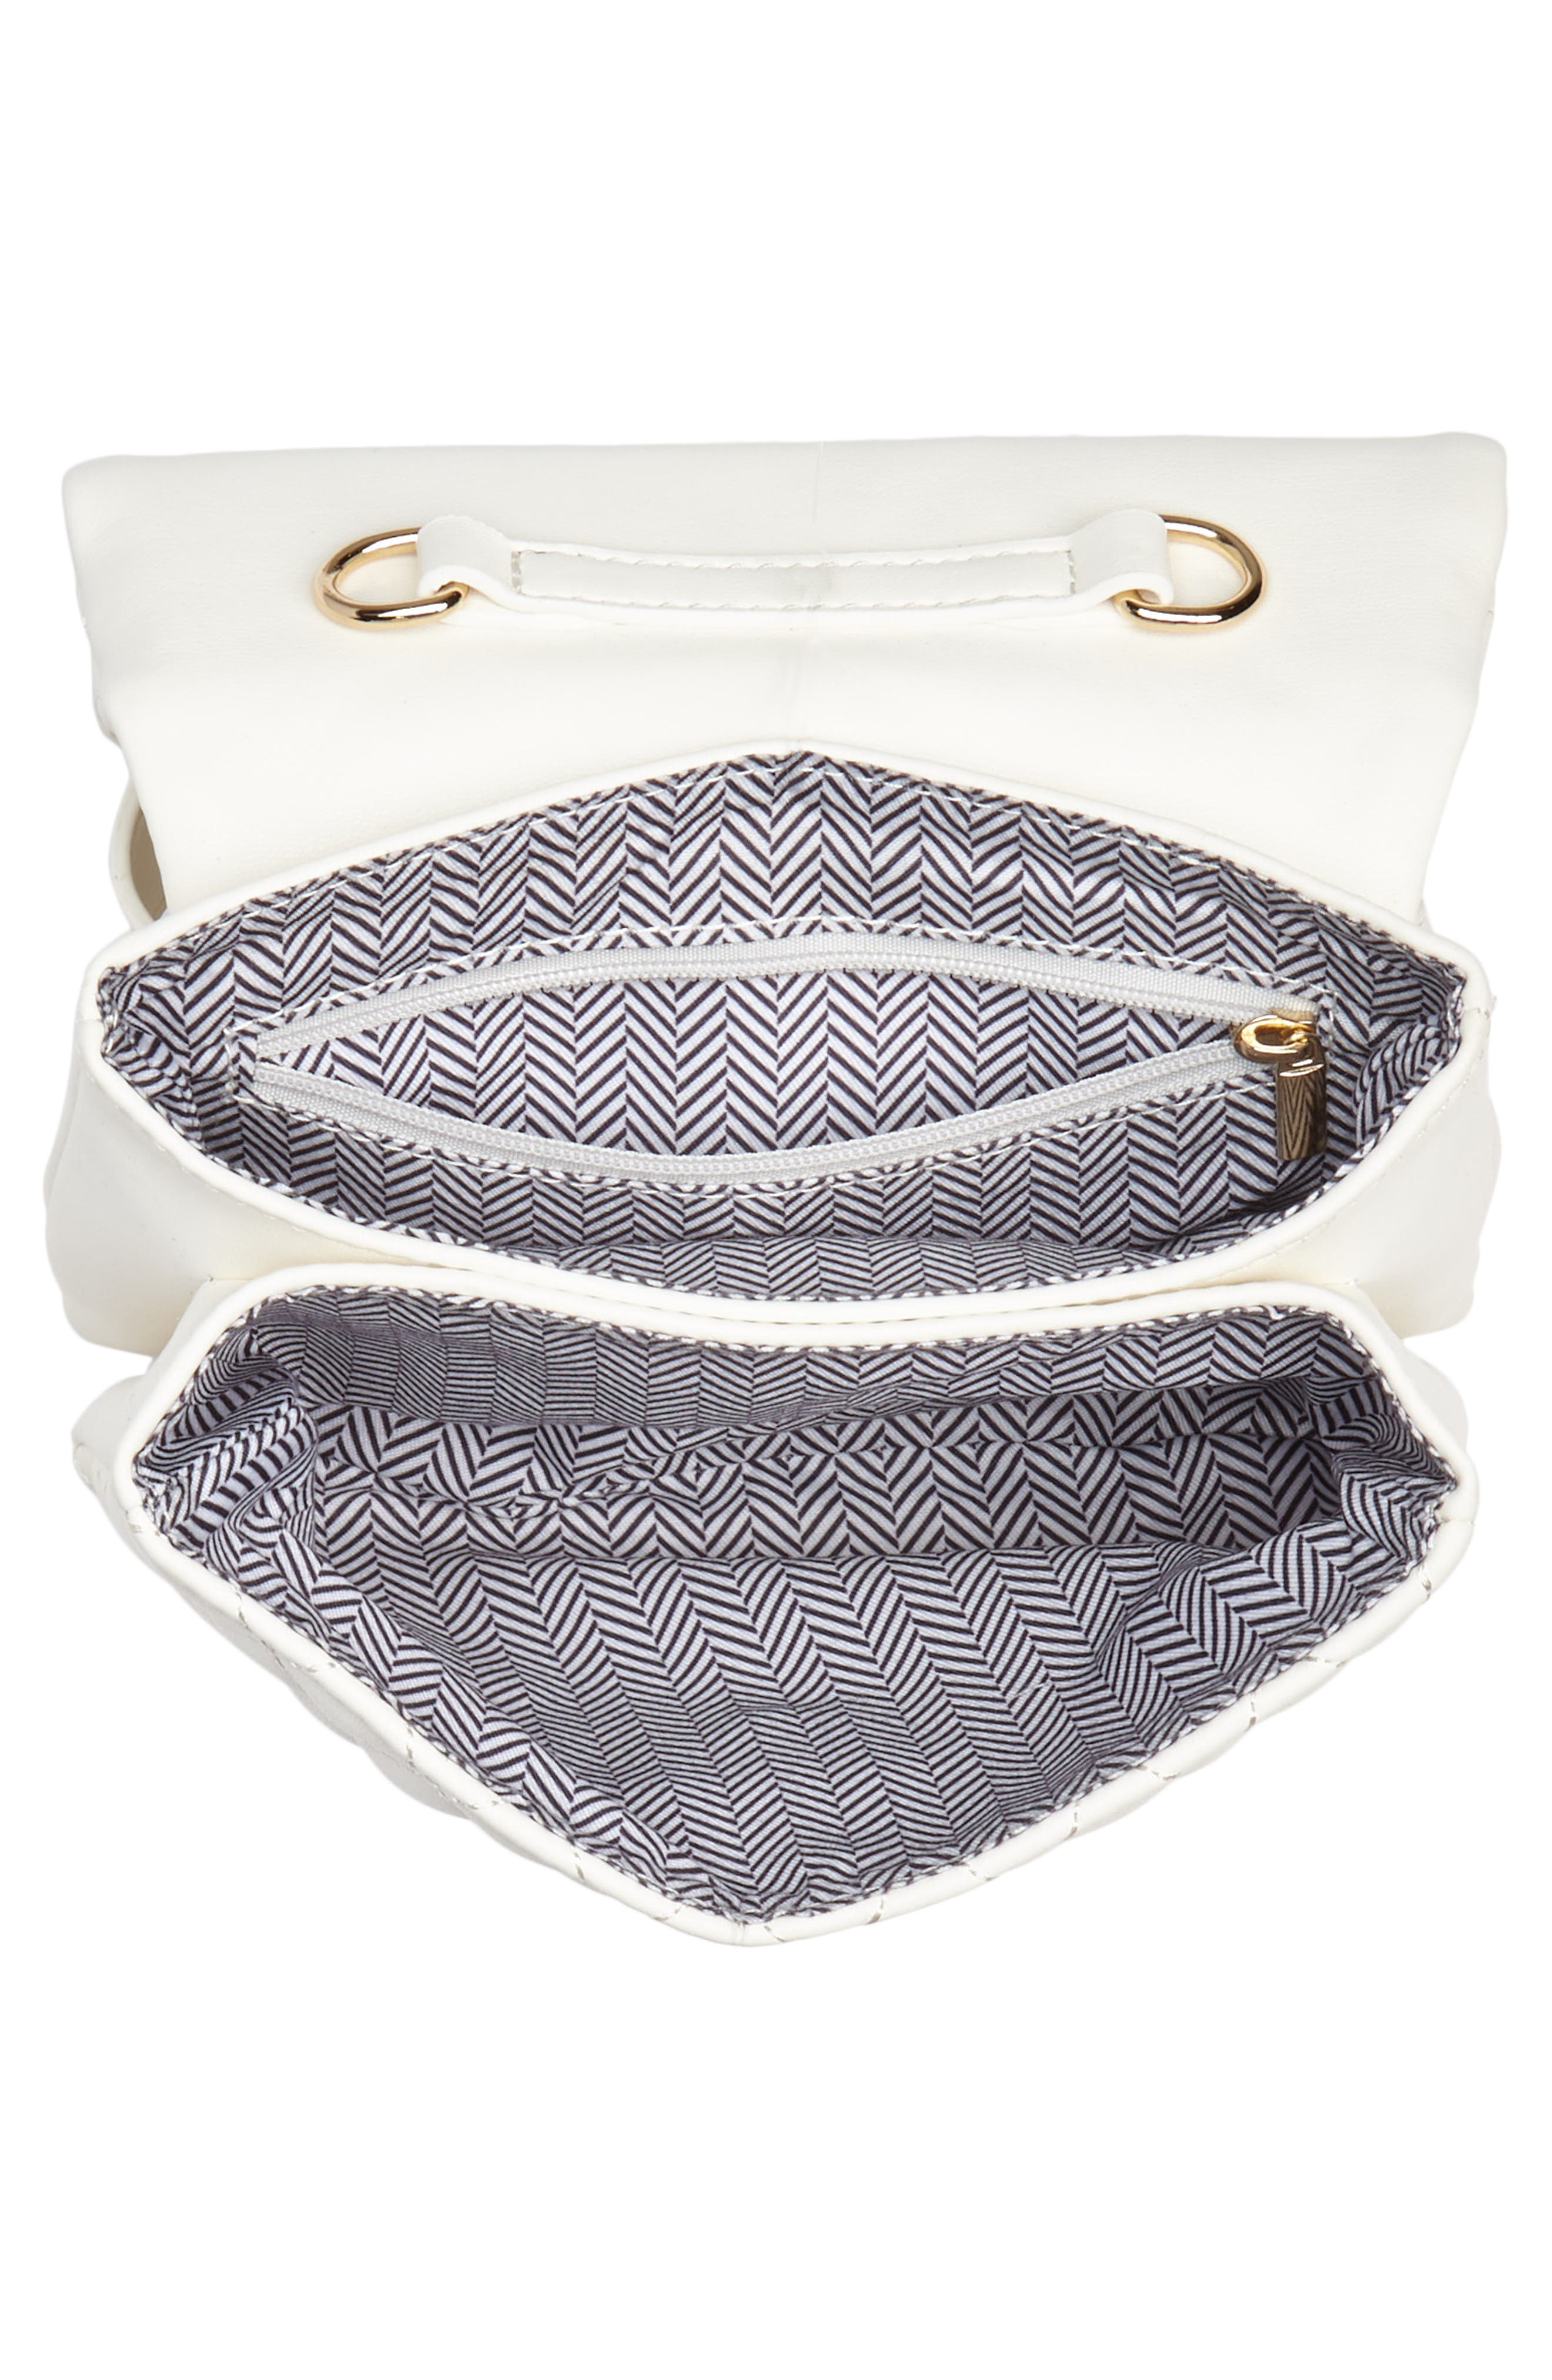 Mali + Lili Quilted Vegan Leather Convertible Belt Bag,                             Alternate thumbnail 6, color,                             WHITE